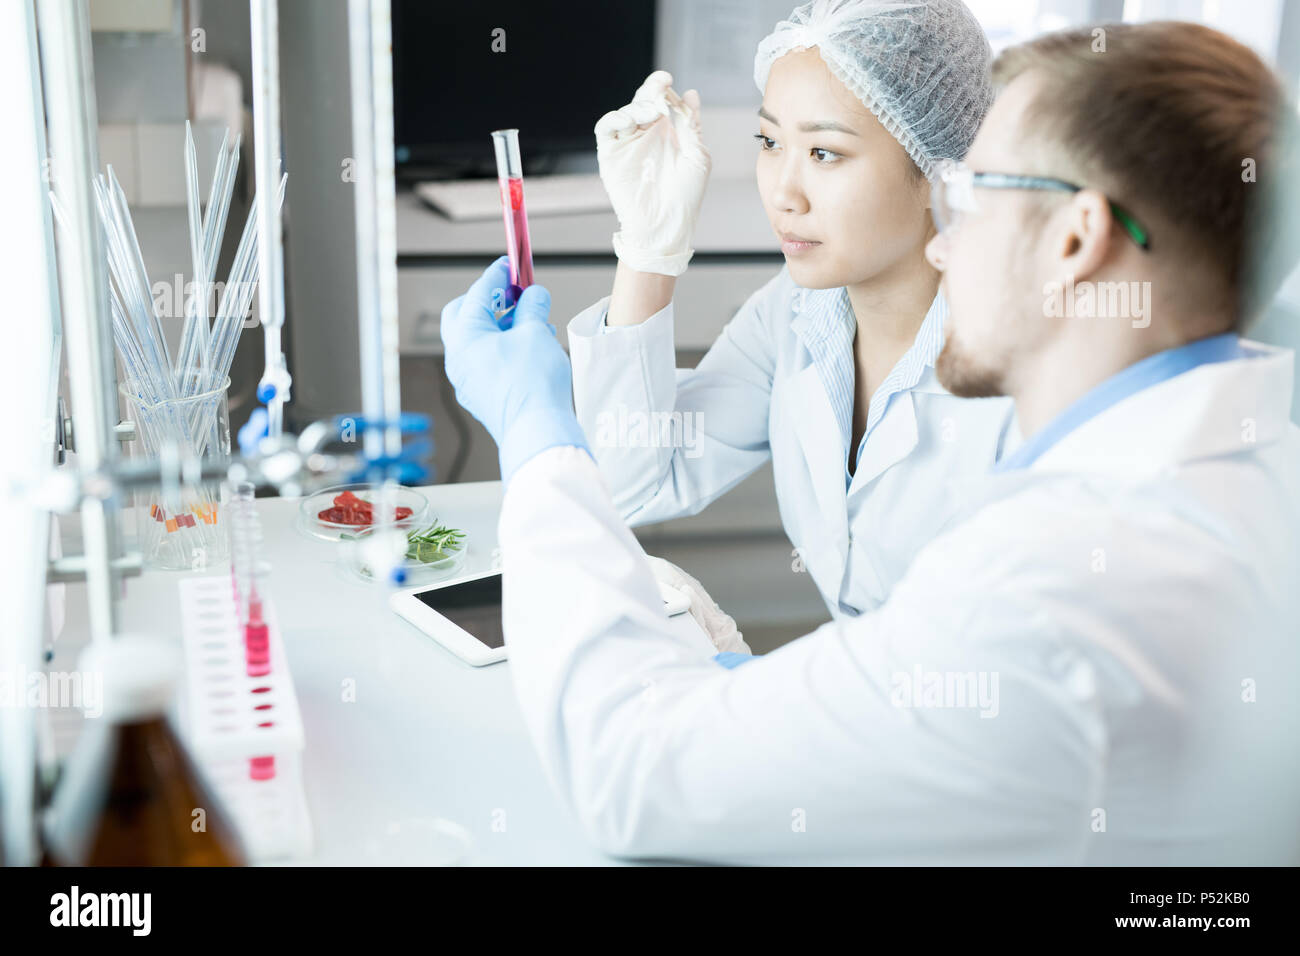 Microbiologists observing test glass with pink liquid - Stock Image